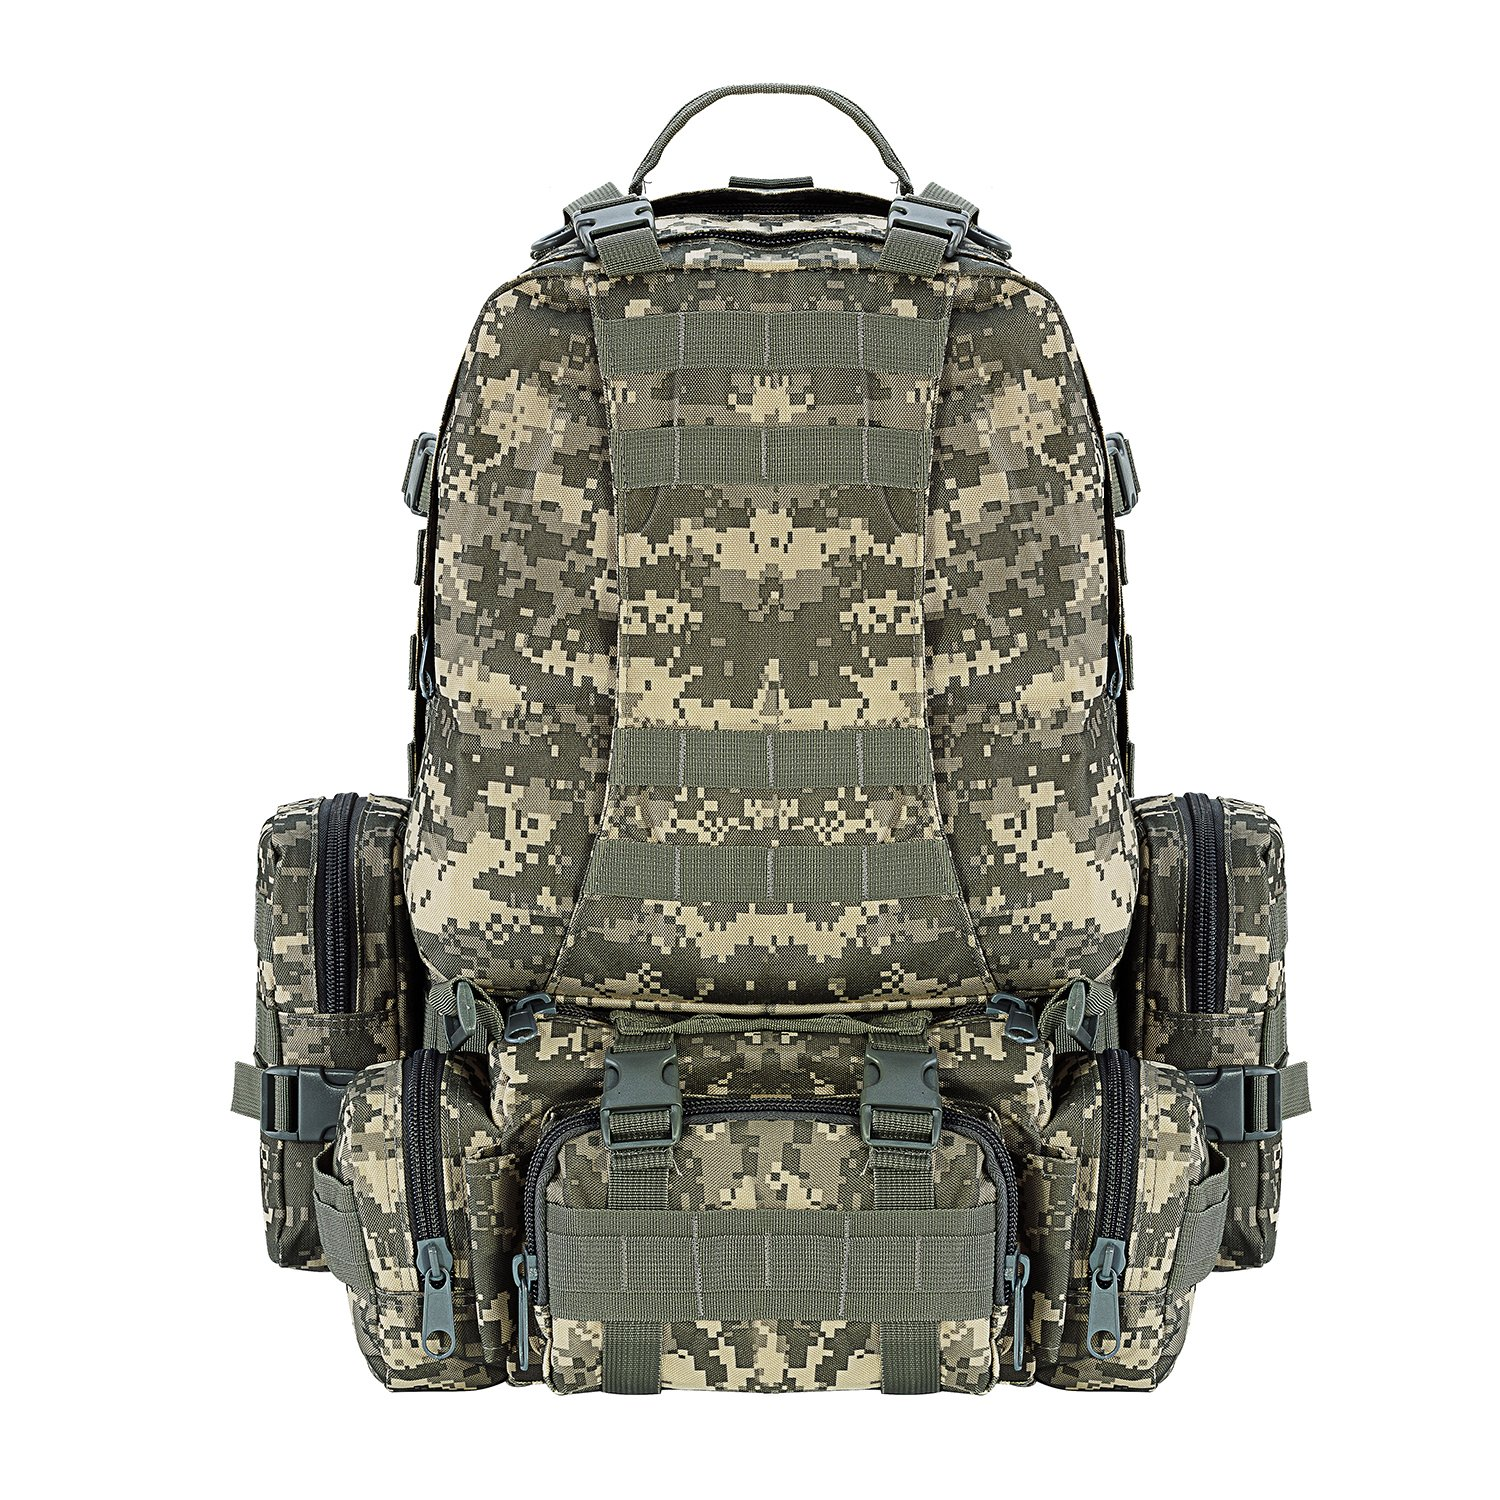 CVLIFE 60L Built-up Military Tactical Army Outdoor Backpacks Assault Combat Rucksack Heavy Bag ACU by CVLIFE (Image #1)